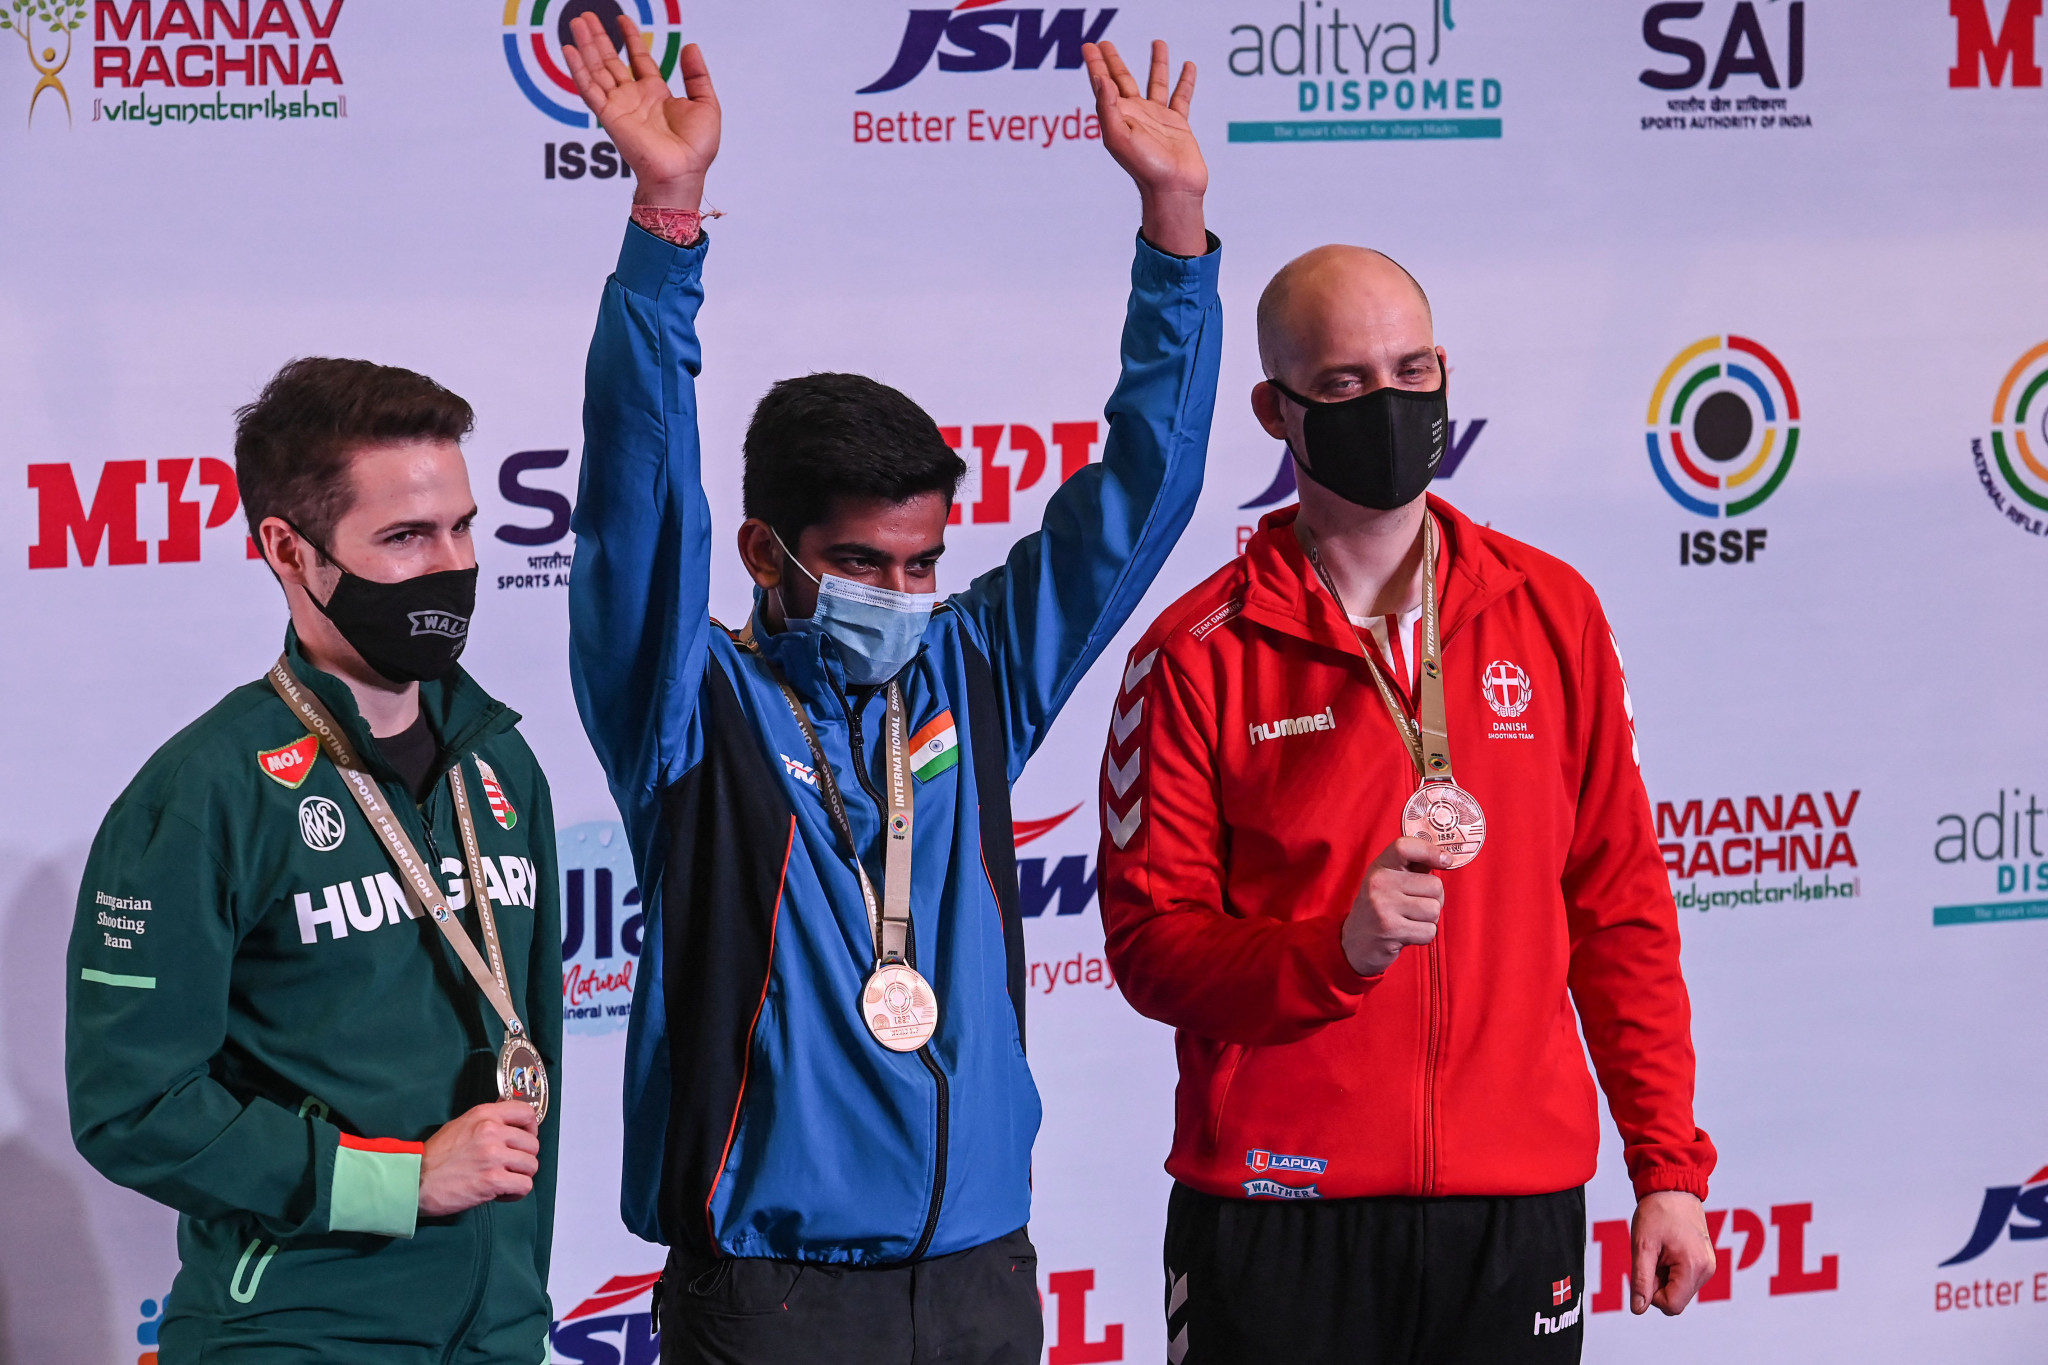 Singh wins home gold for India at New Delhi ISSF World Cup